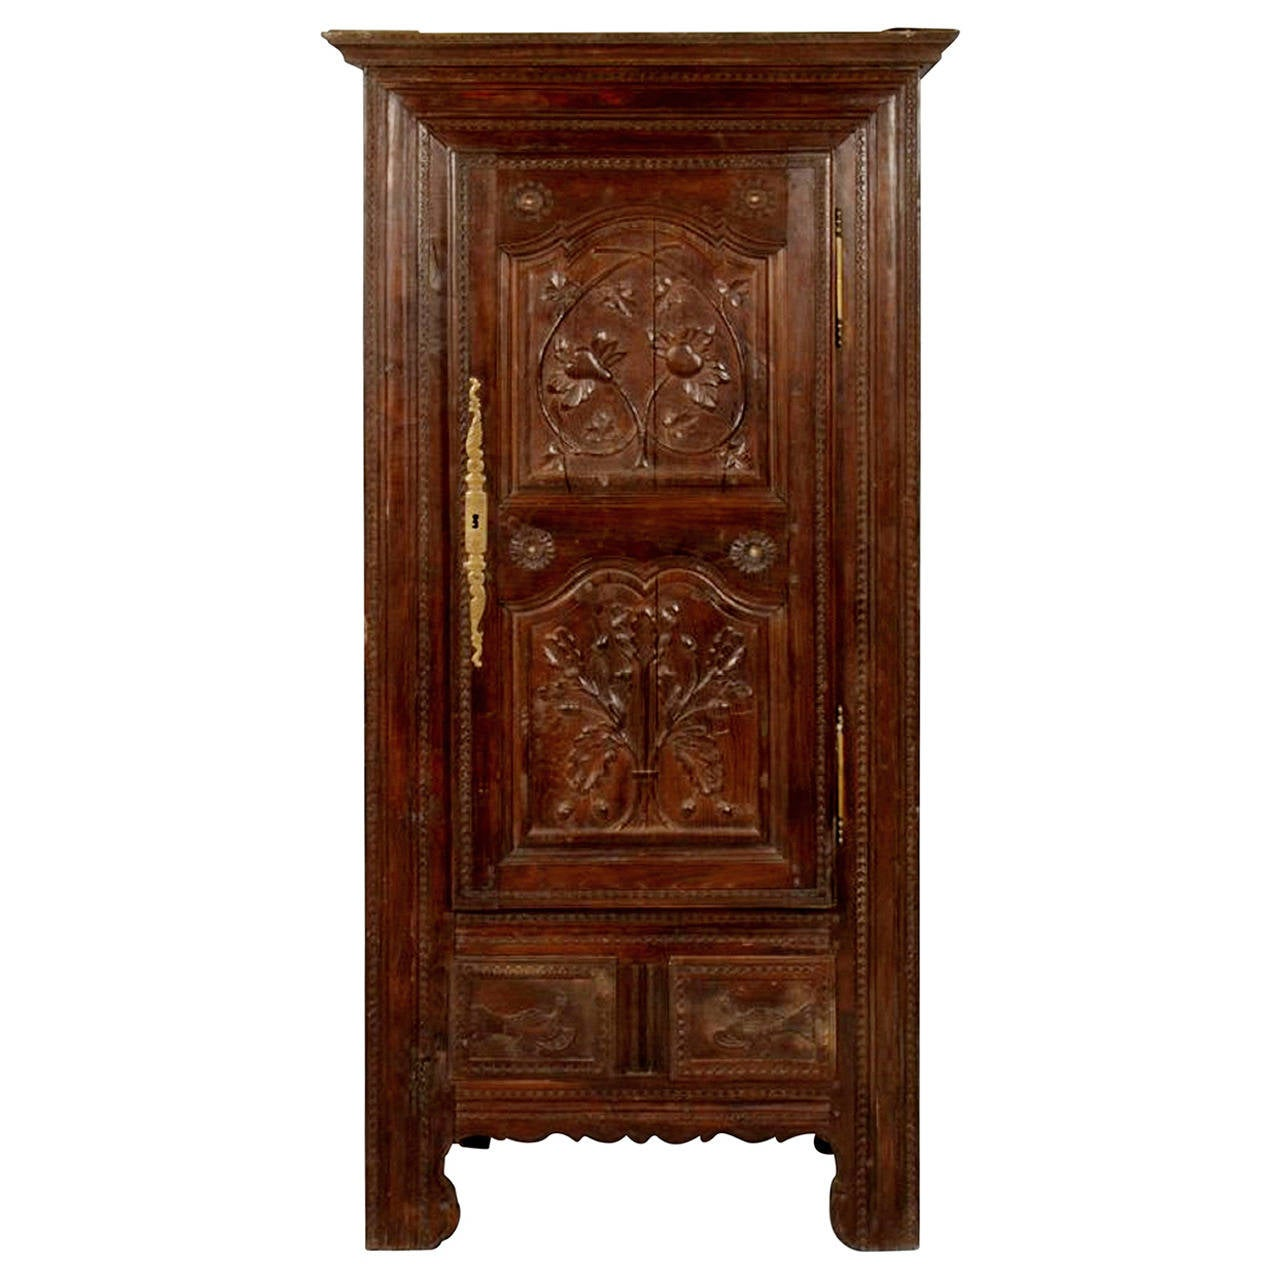 A French Oak Bonnetiere with Carved Door, Early 19th Century